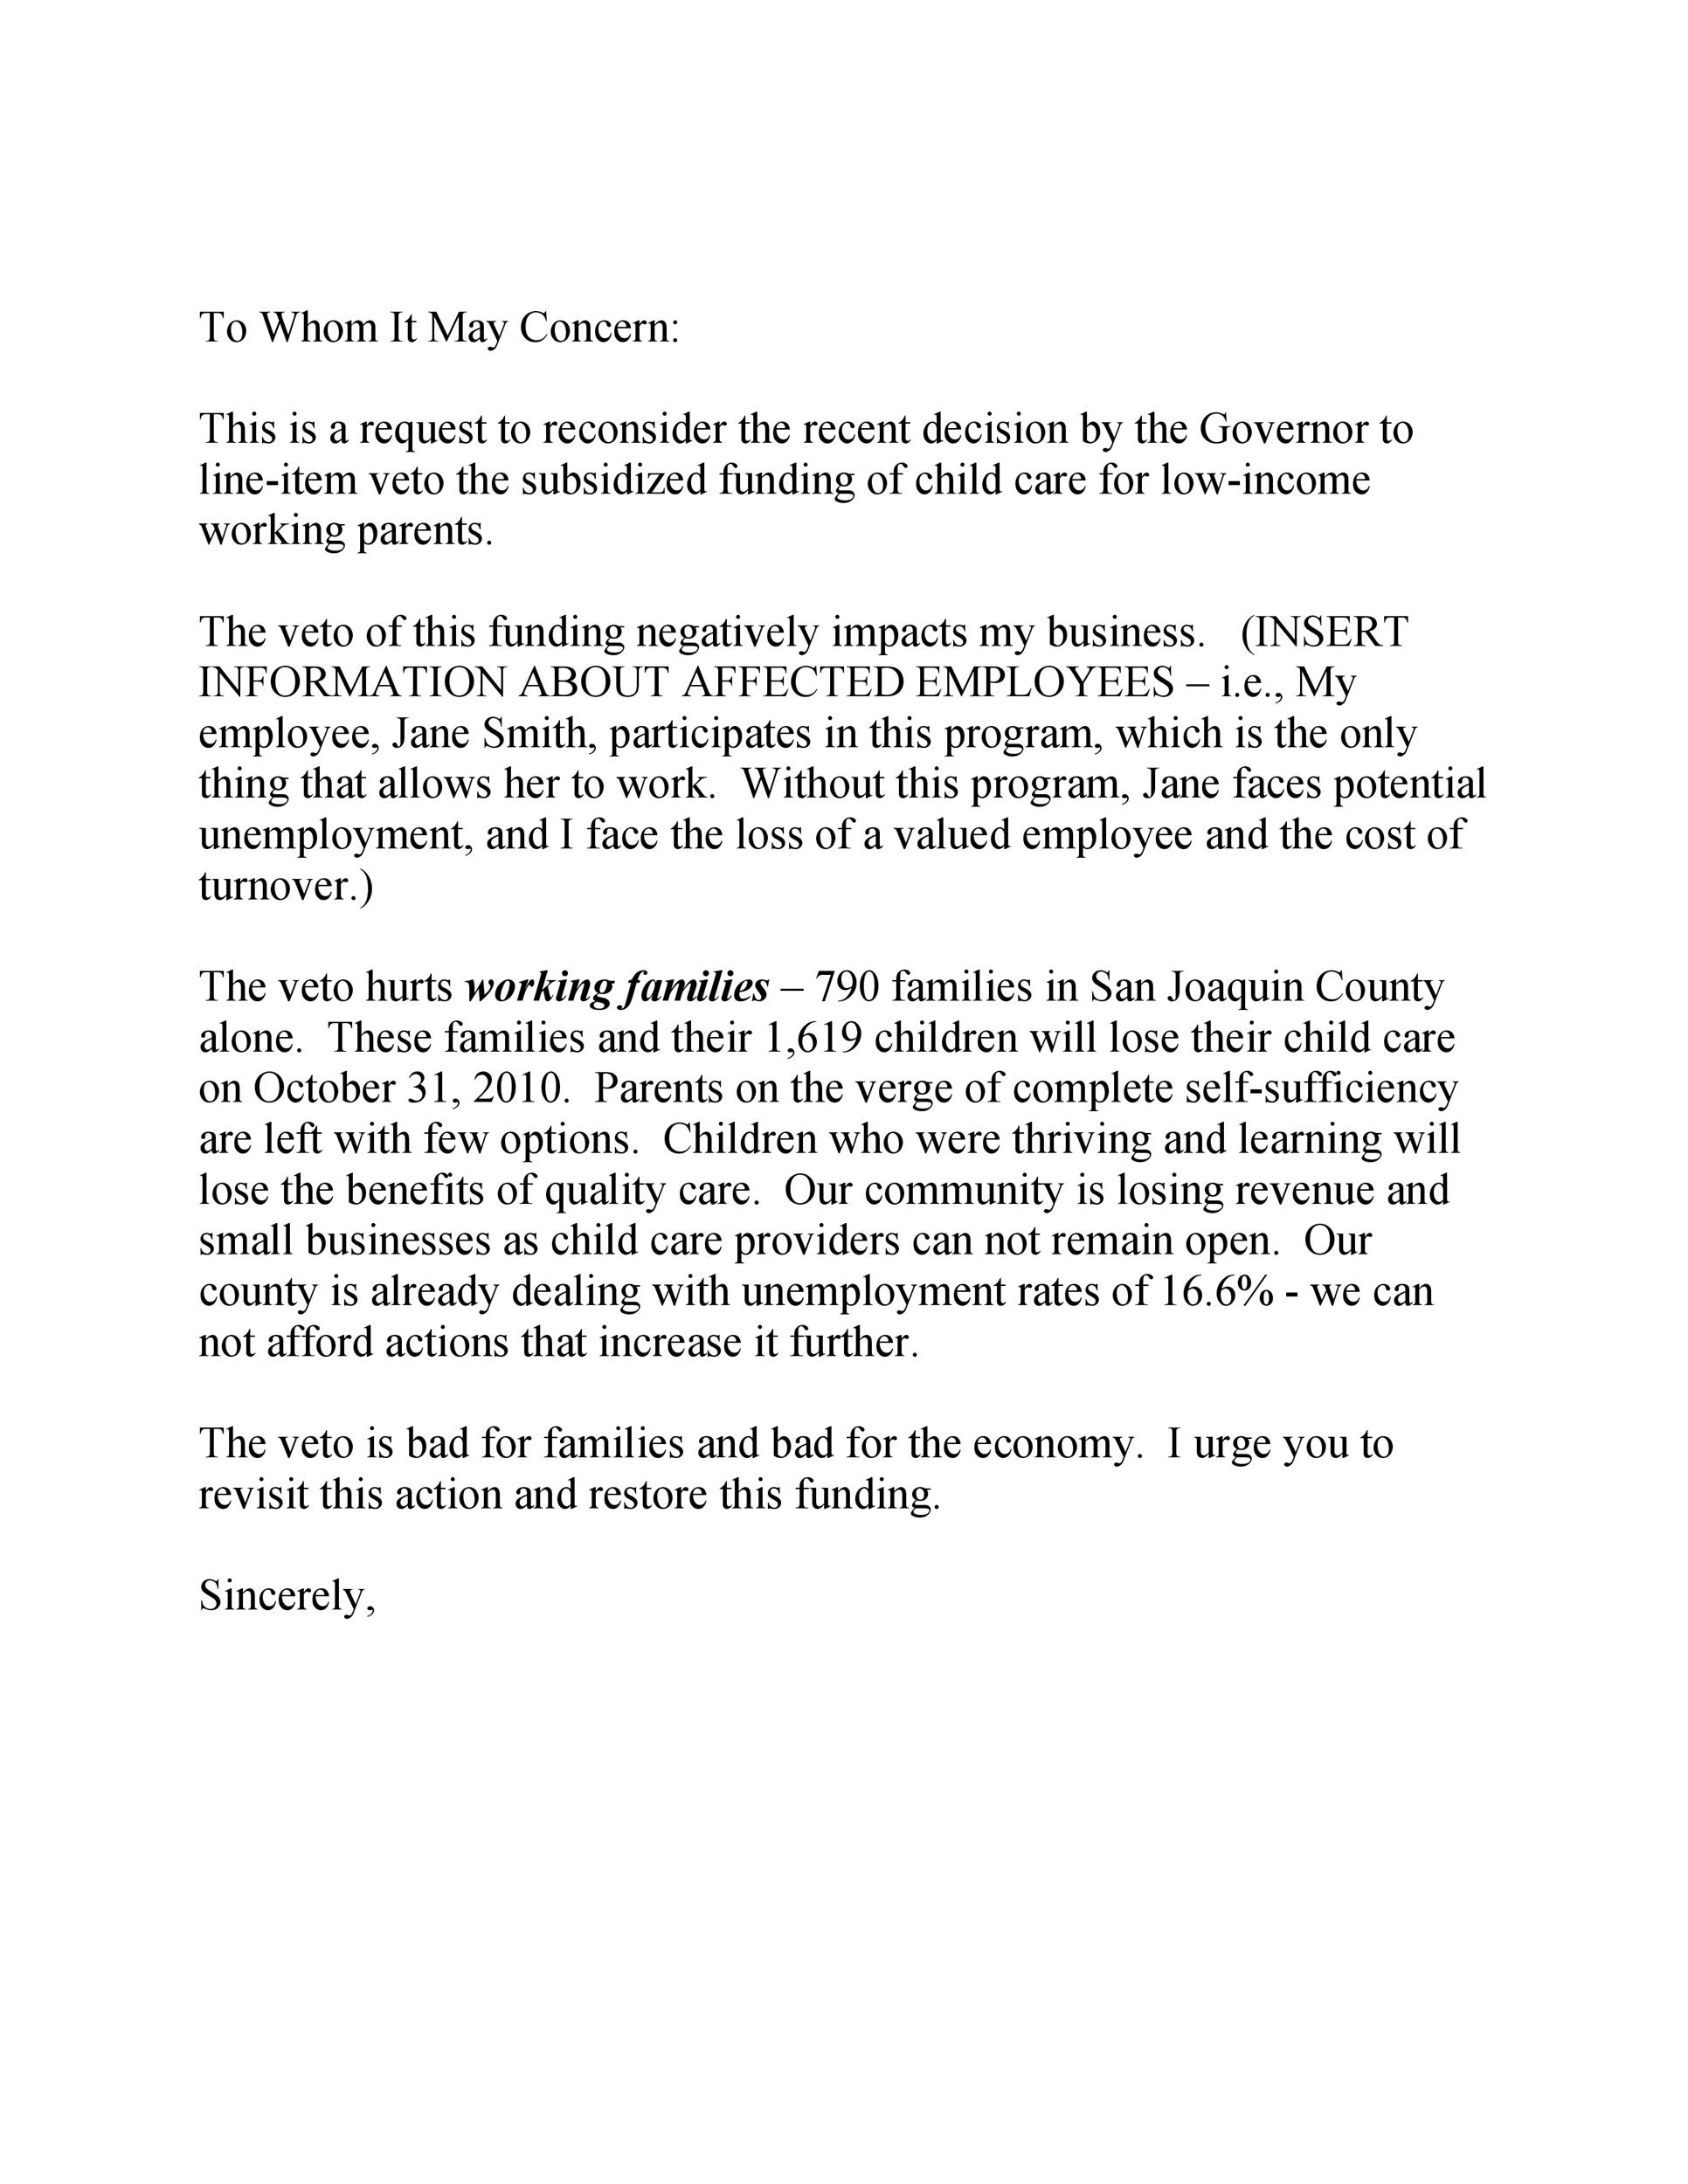 Free to whom it may concern letter 42